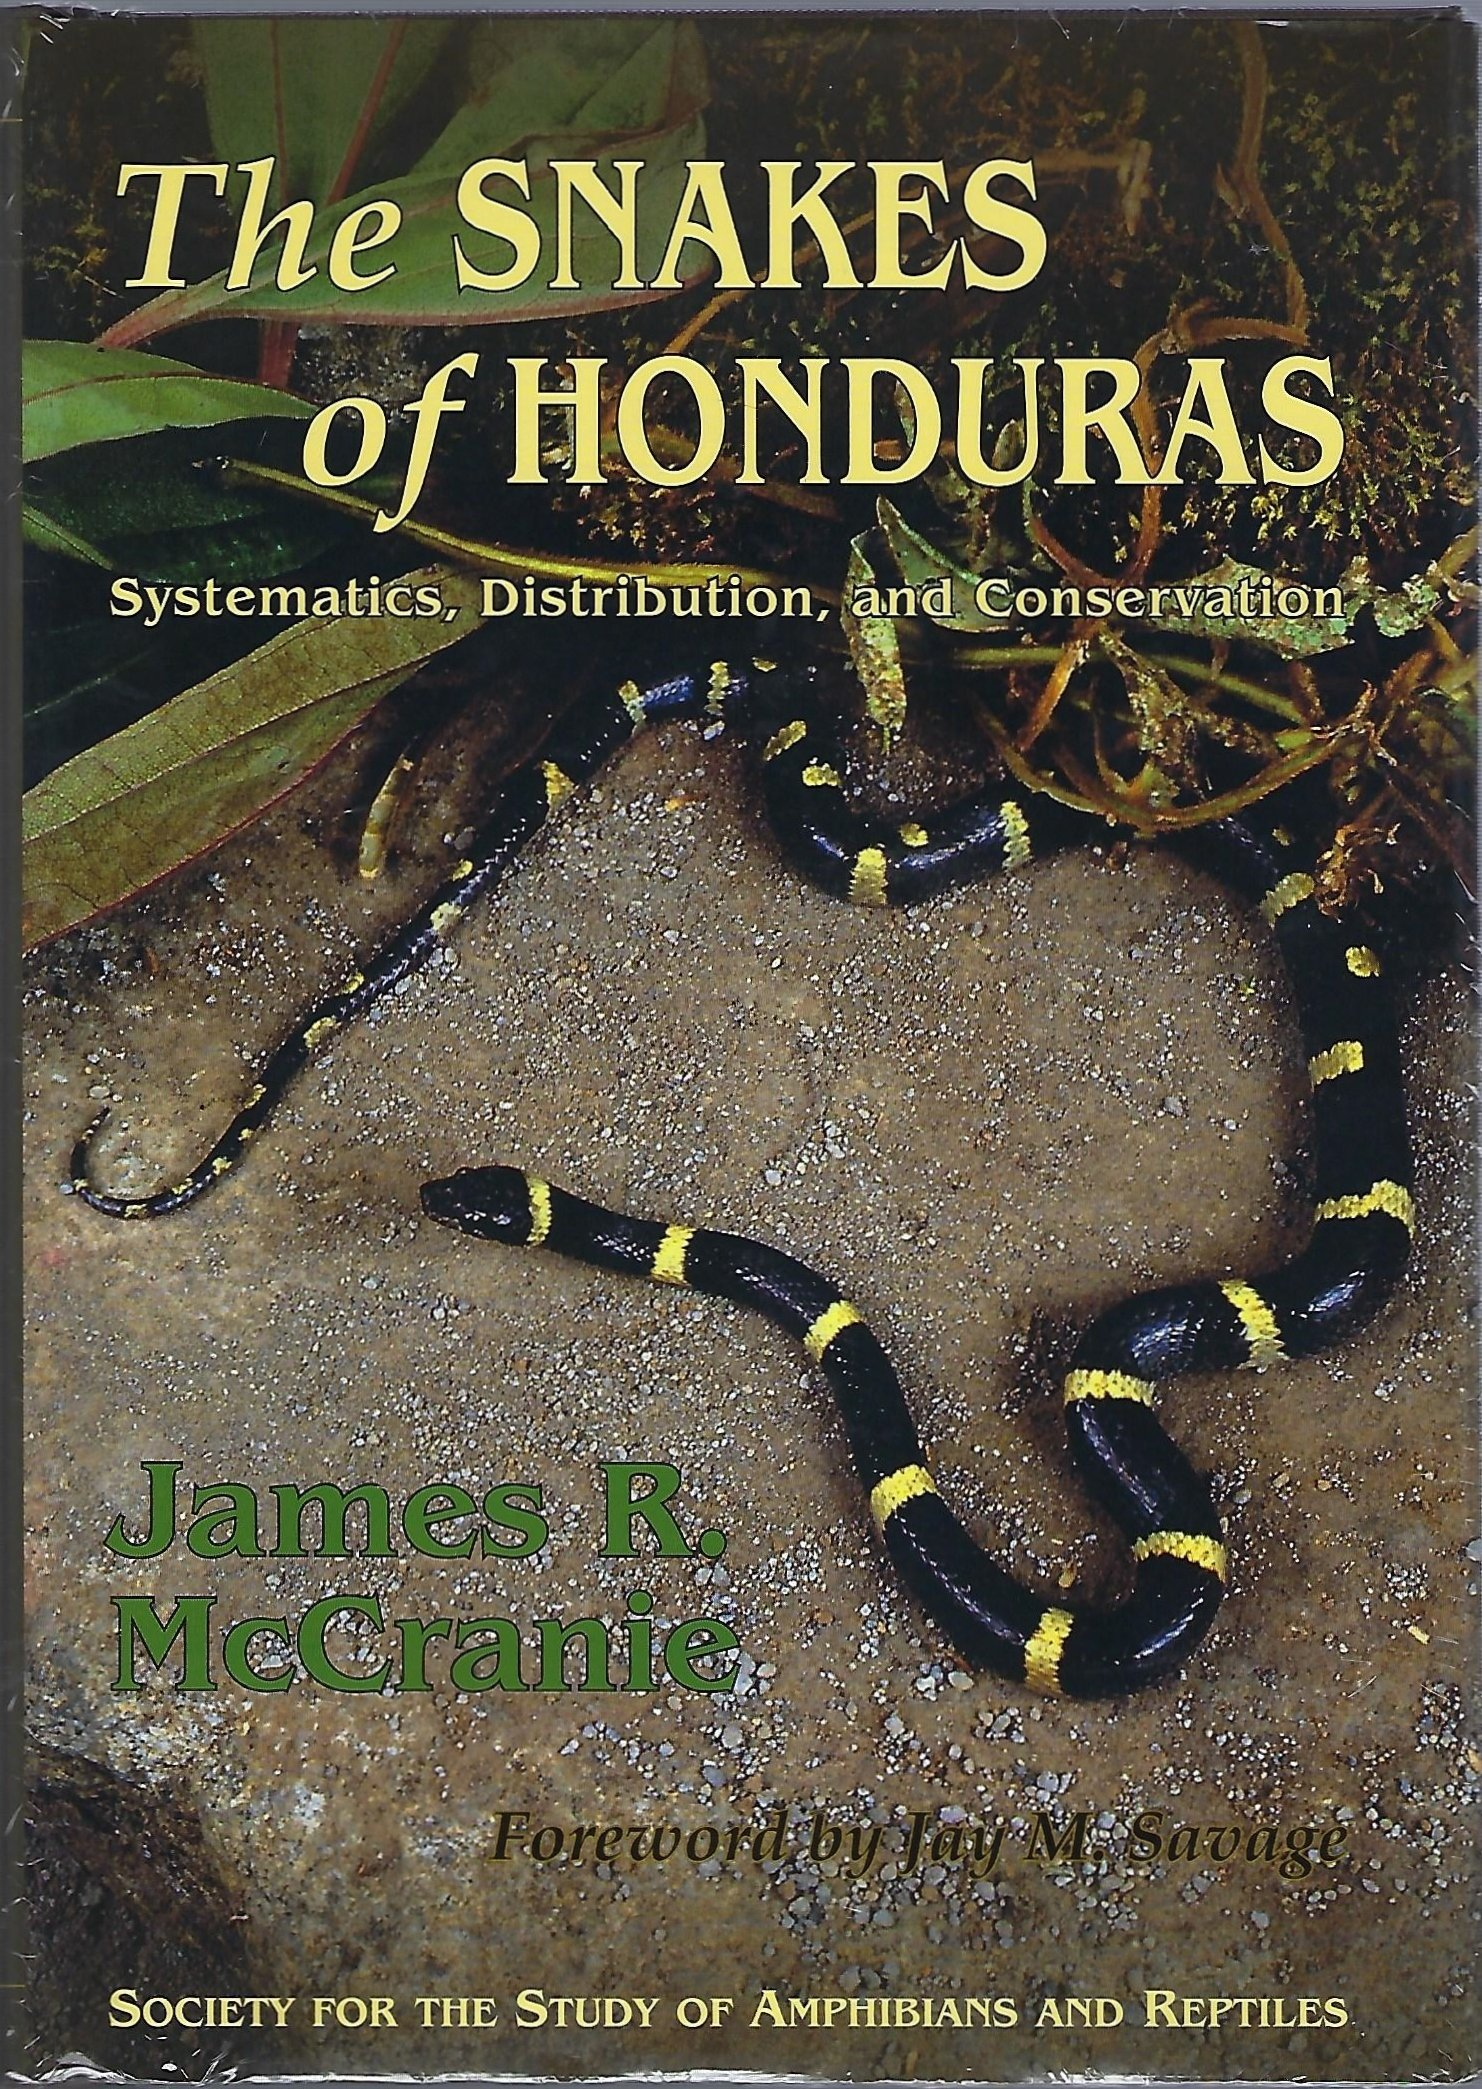 The Snakes of Honduras: Systematics, Distribution, and Conservation